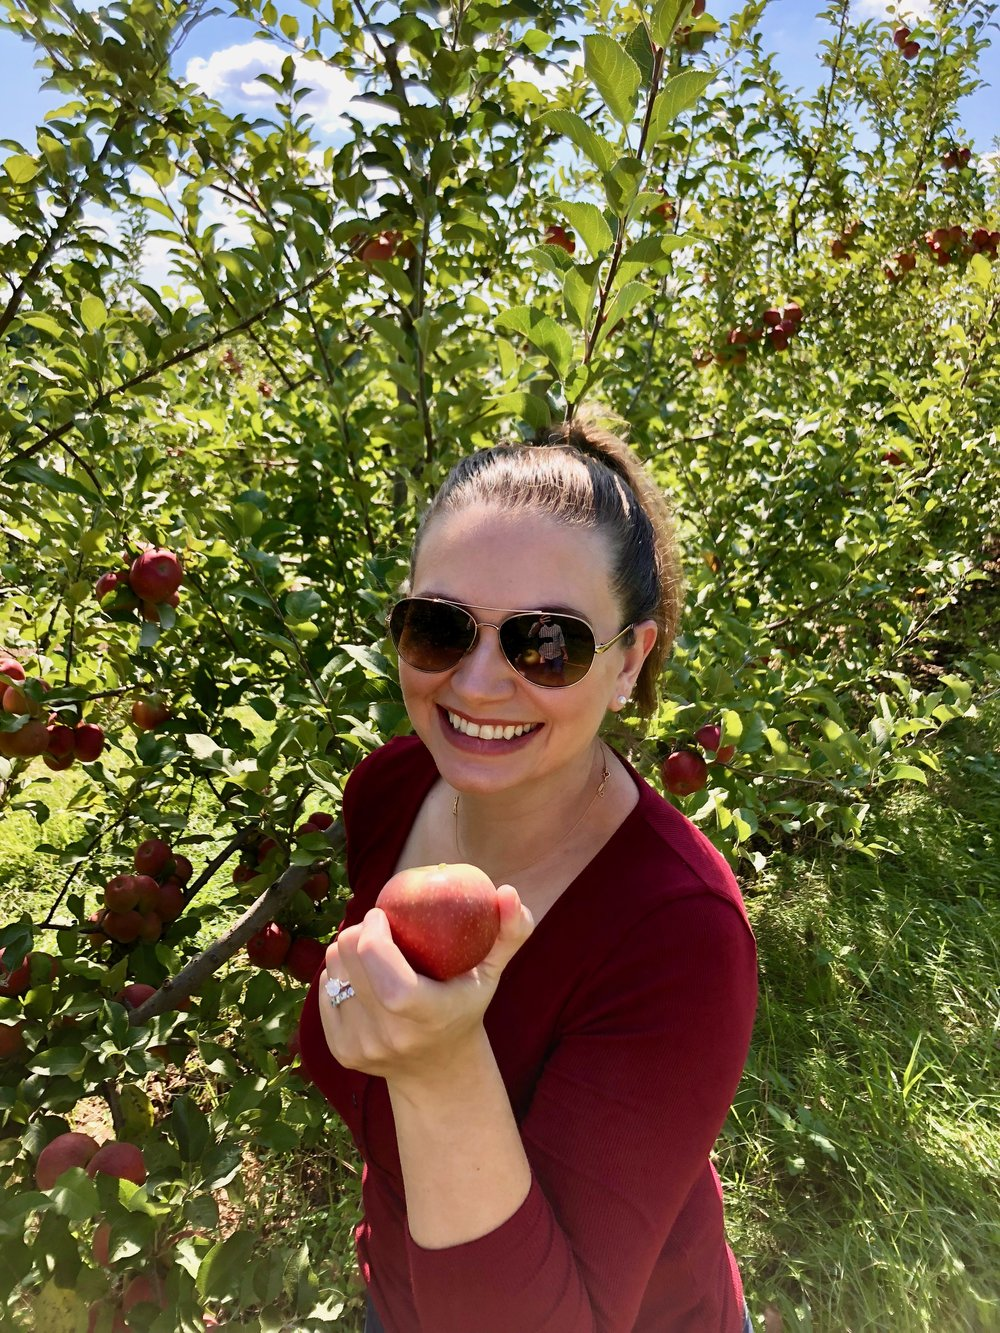 Apple Picking at Macintosh Fruit Farm